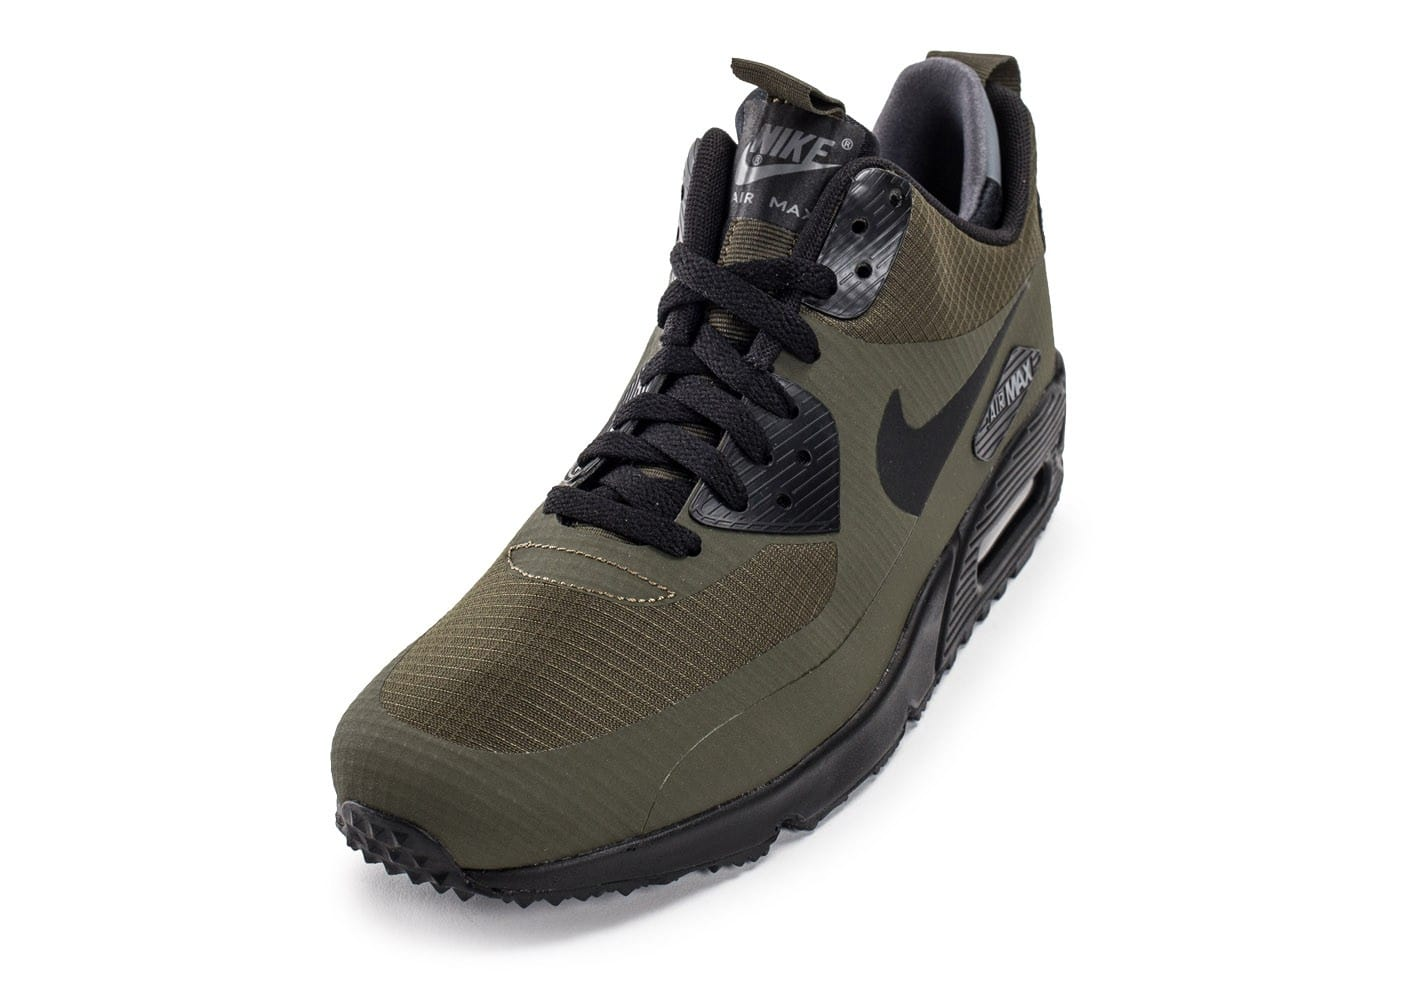 Nike Air Max 90 Mid Winter Green Chaussures Baskets homme